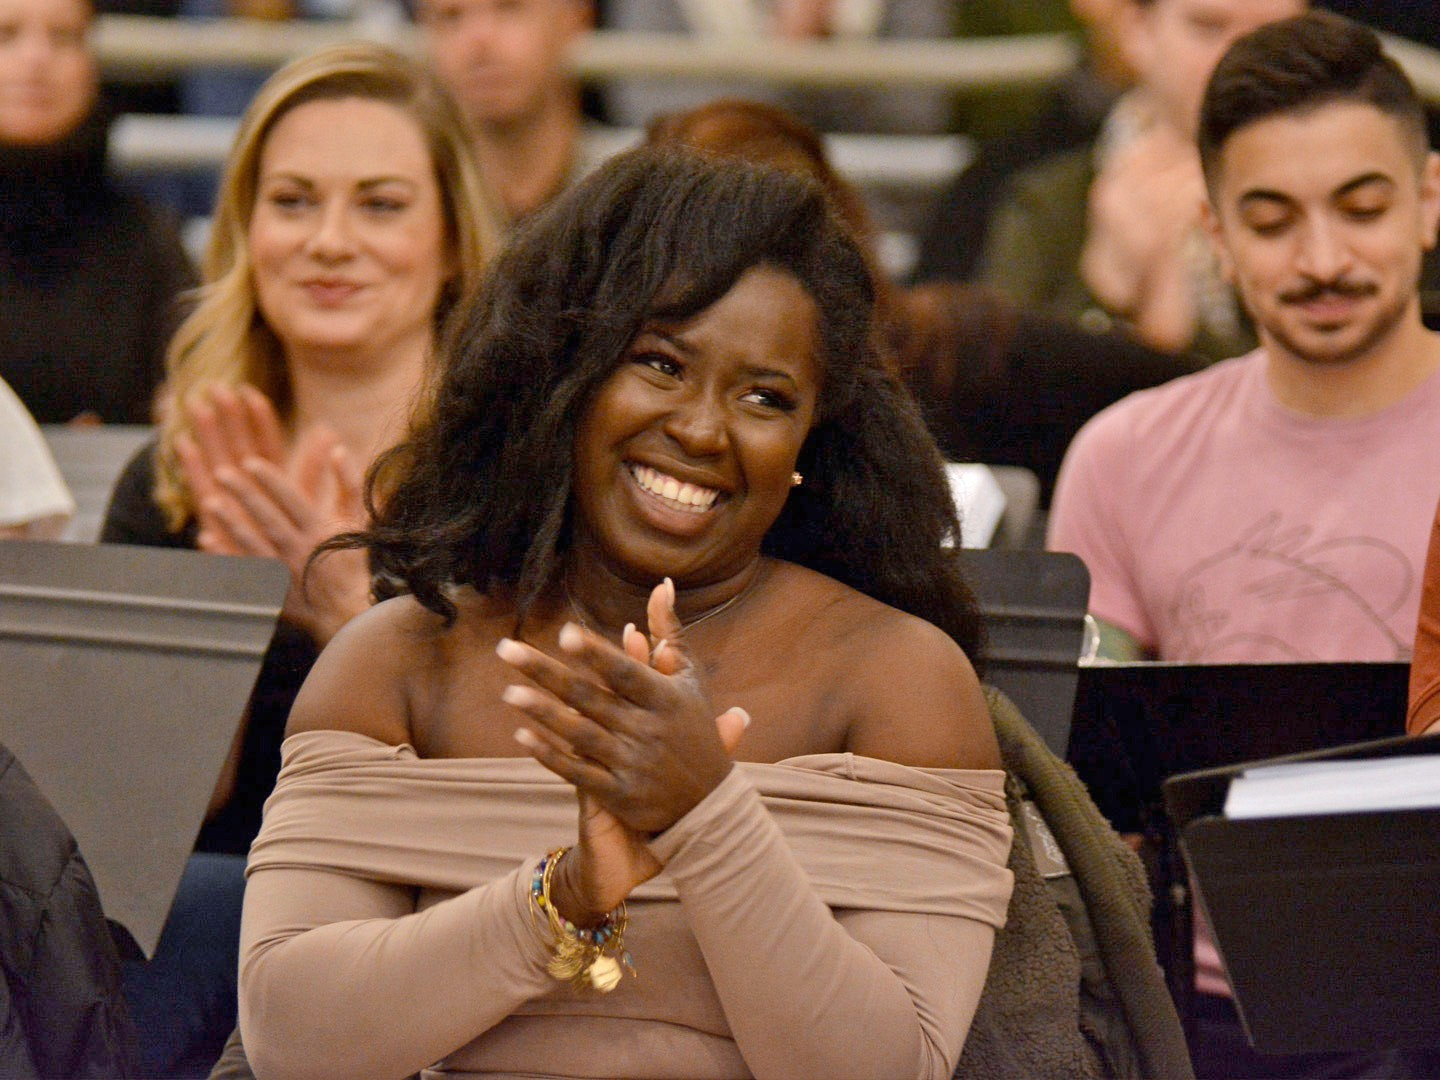 An African-American actress with shoulder-length hair claps while seated in a rehearsal room. She is wearing an off-the-shoulder, long sleeved tan dress and several gold charm bracelets